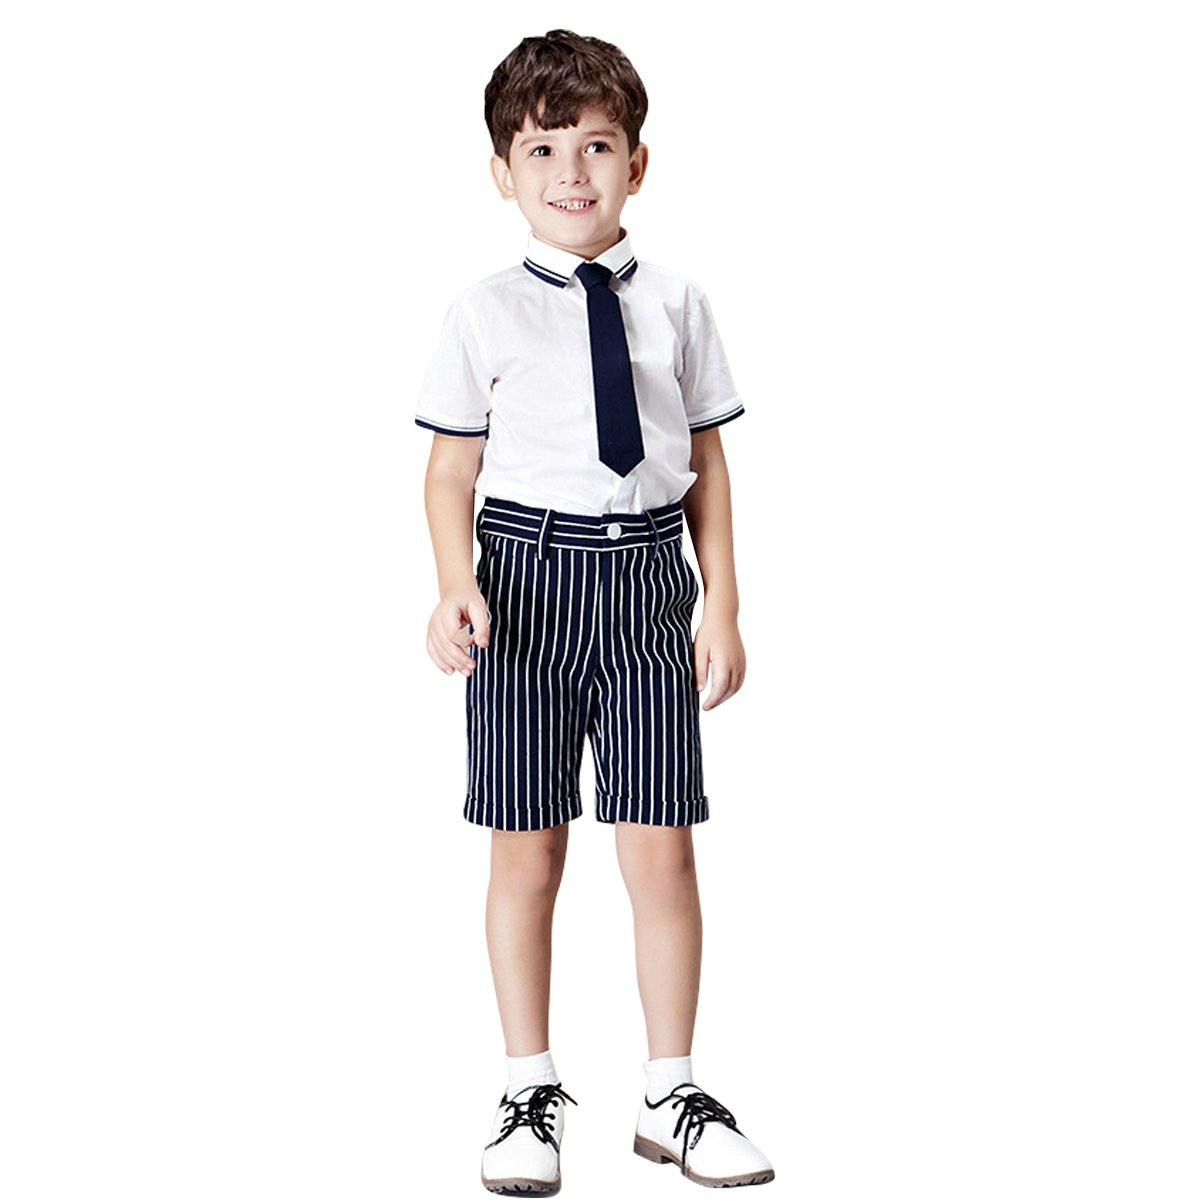 Kanodan Kids Boy Gentleman Short Outfits Formal Wedding Wear, Shirt + Pants +Tie (White, 11-12Years)